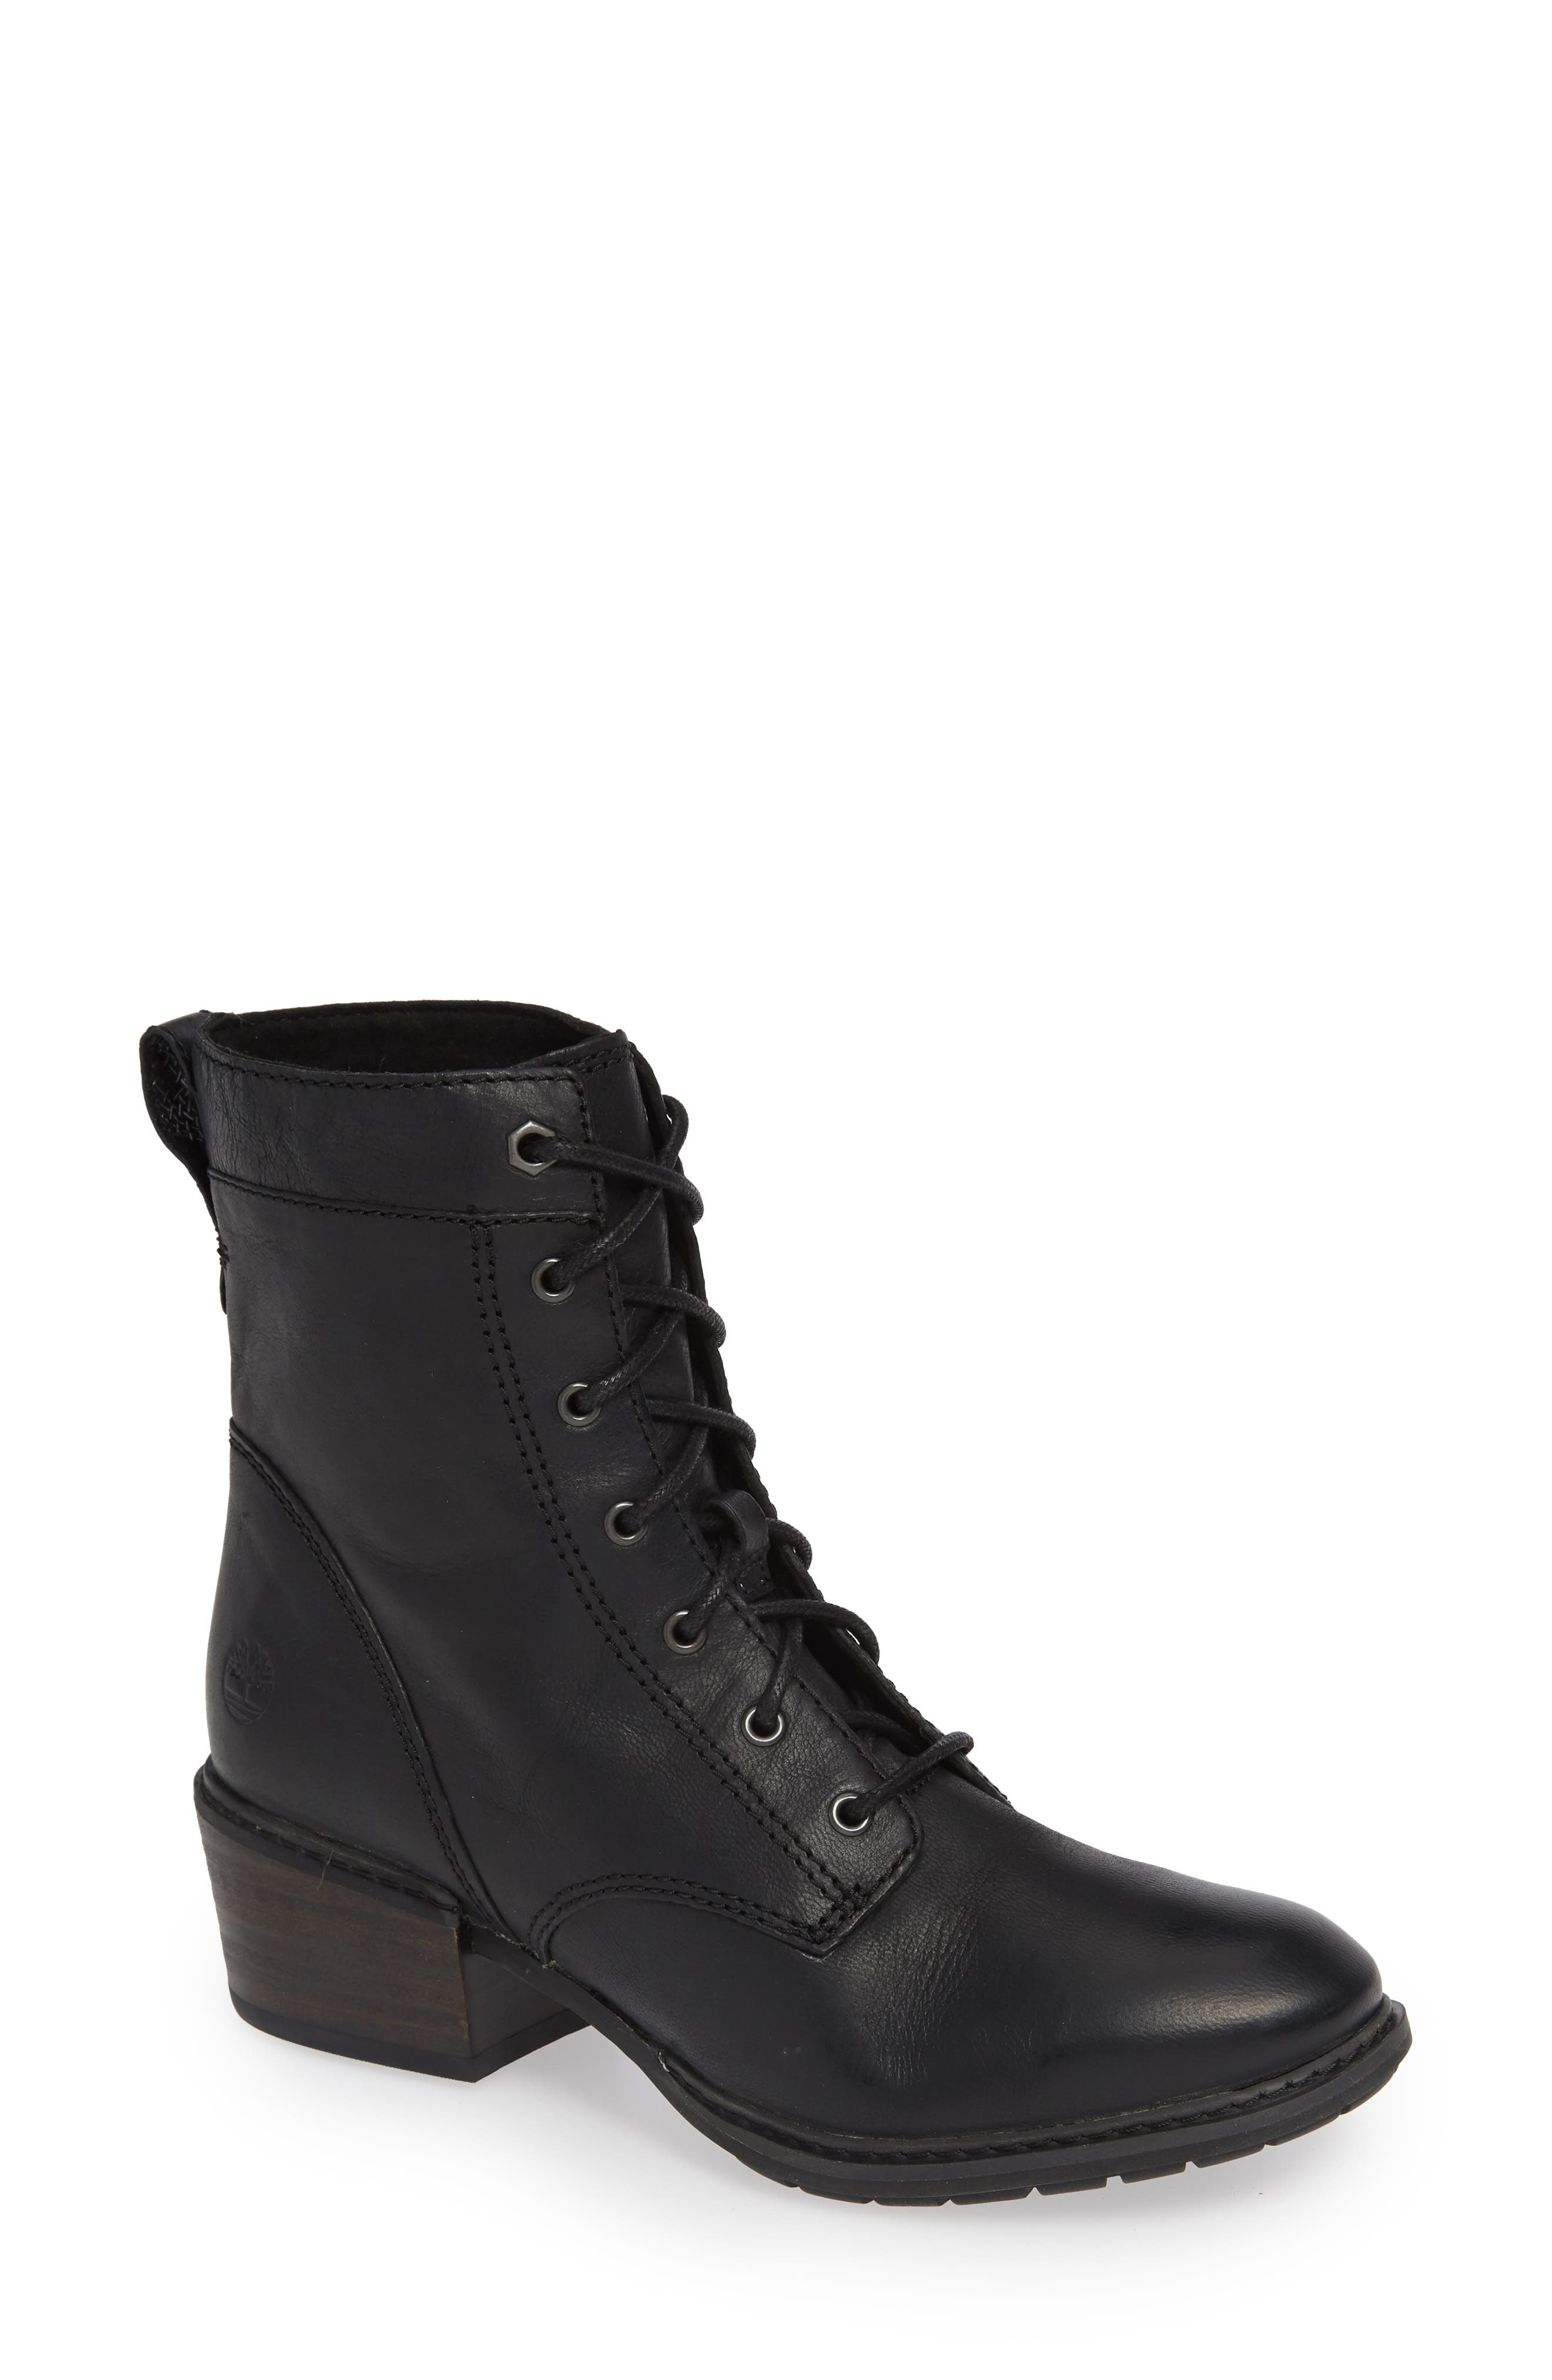 Timberland Sutherlin Bay Water Resistant Lace-Up Bootie- Black